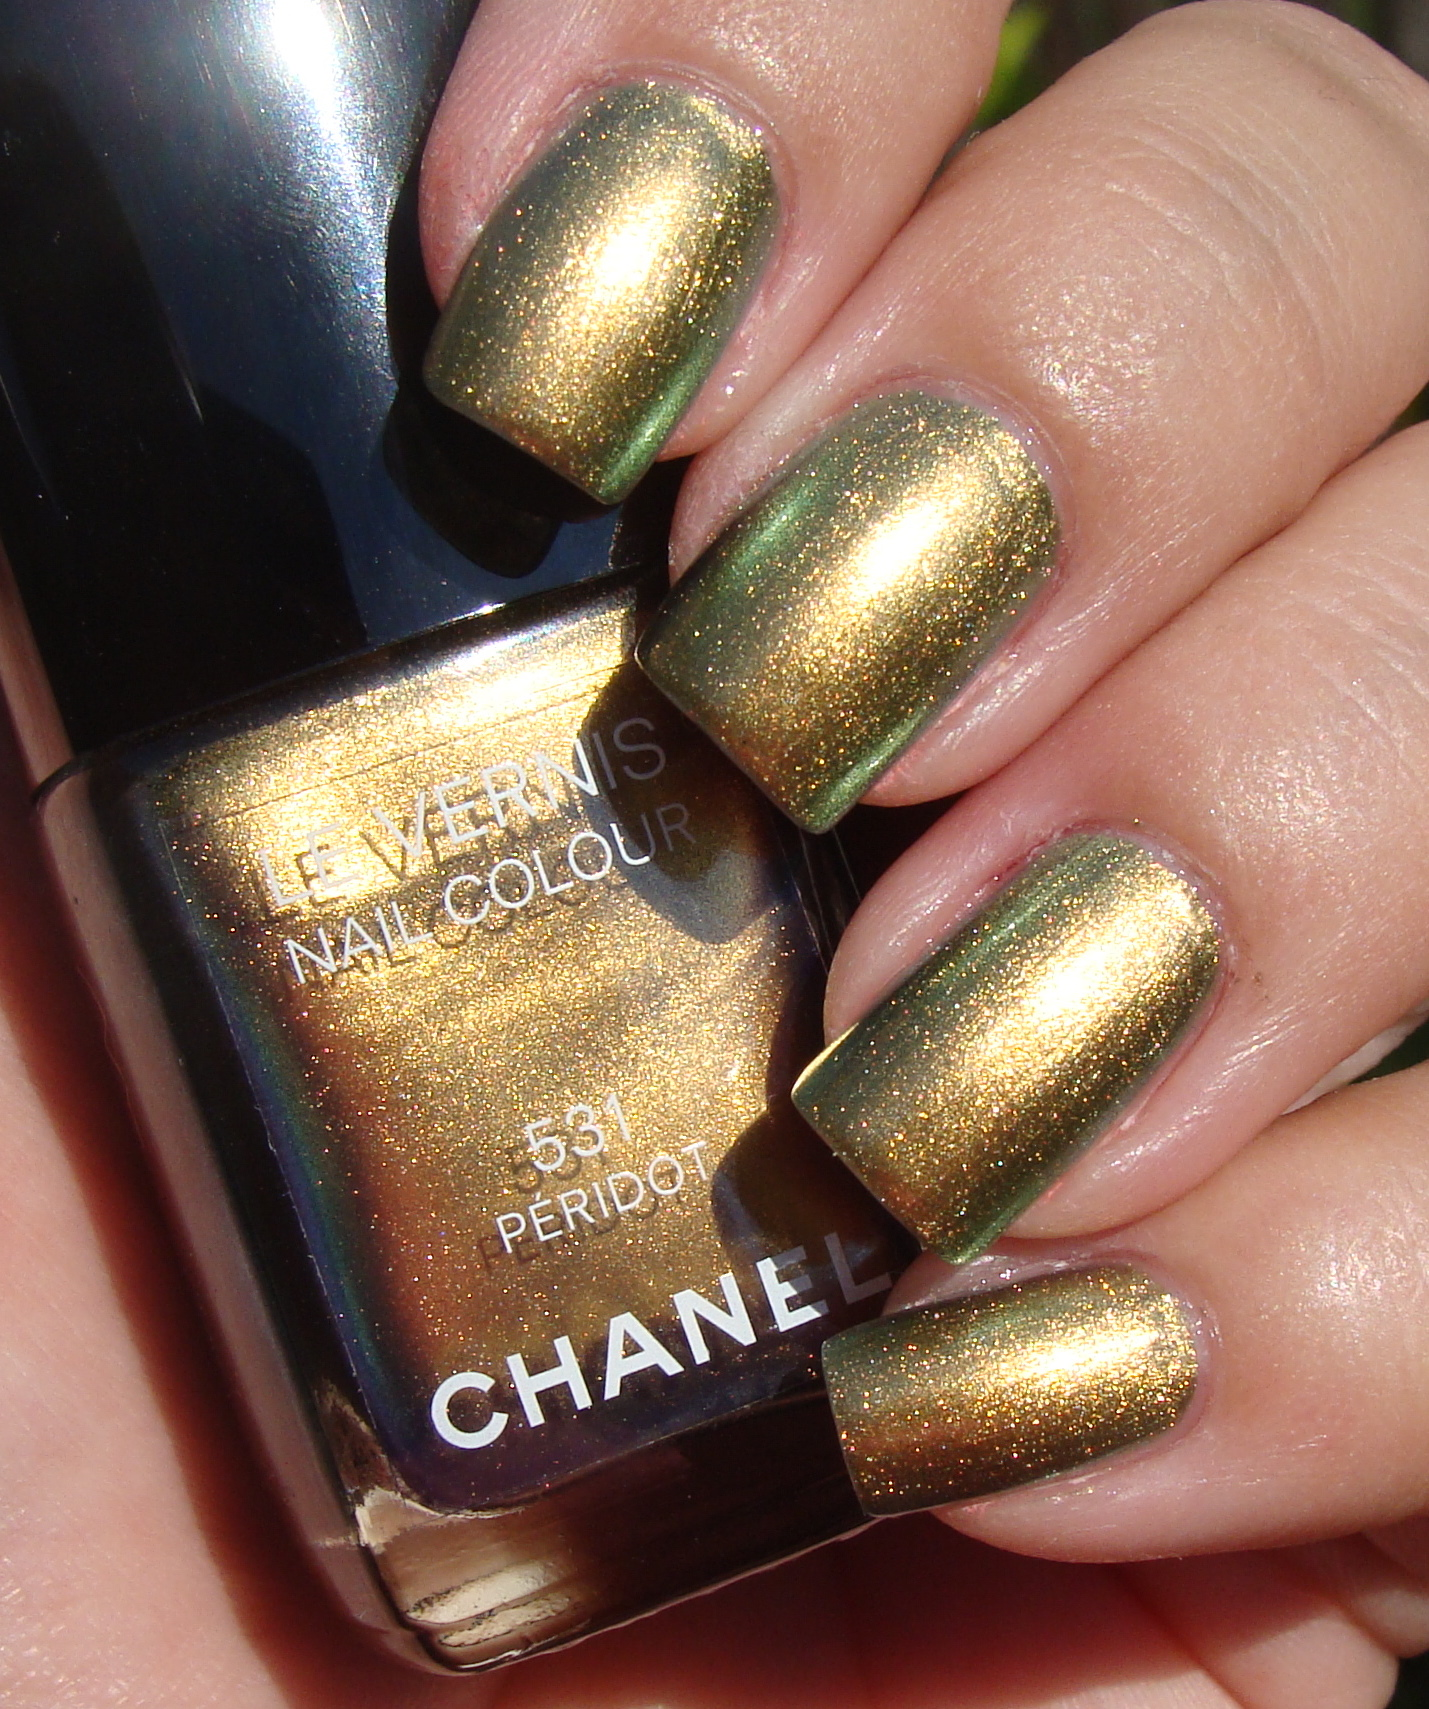 Pictures of Chanel\'s New Peridot Nail Polish | POPSUGAR Beauty